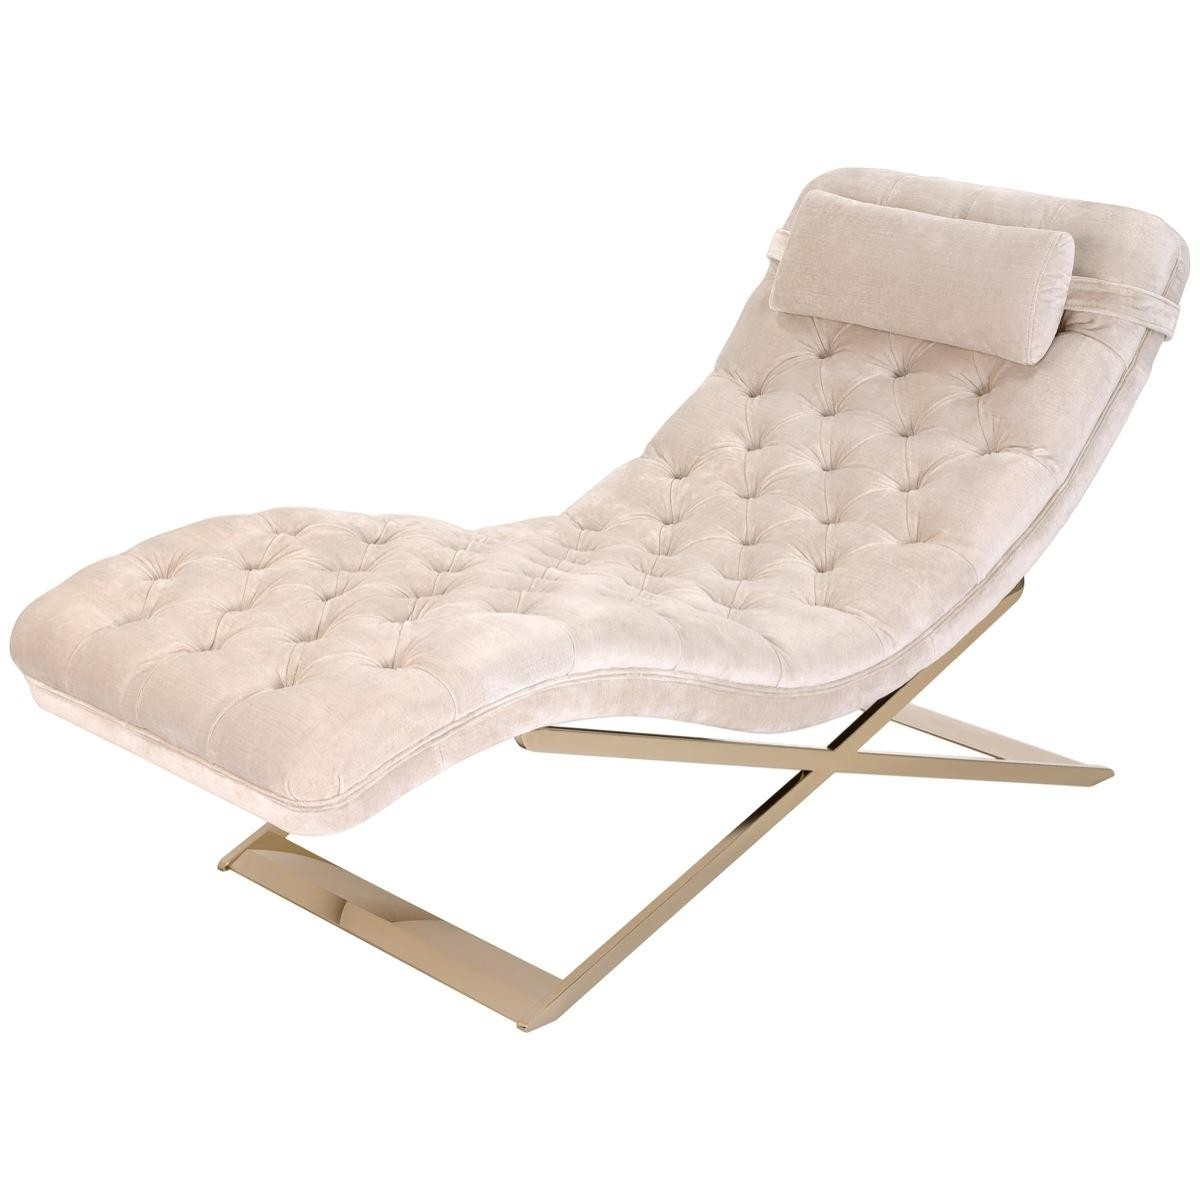 Gold Chaise Lounge Chairs Intended For Recent The Well Appointed House – Luxuries For The Home – The Well (View 8 of 15)